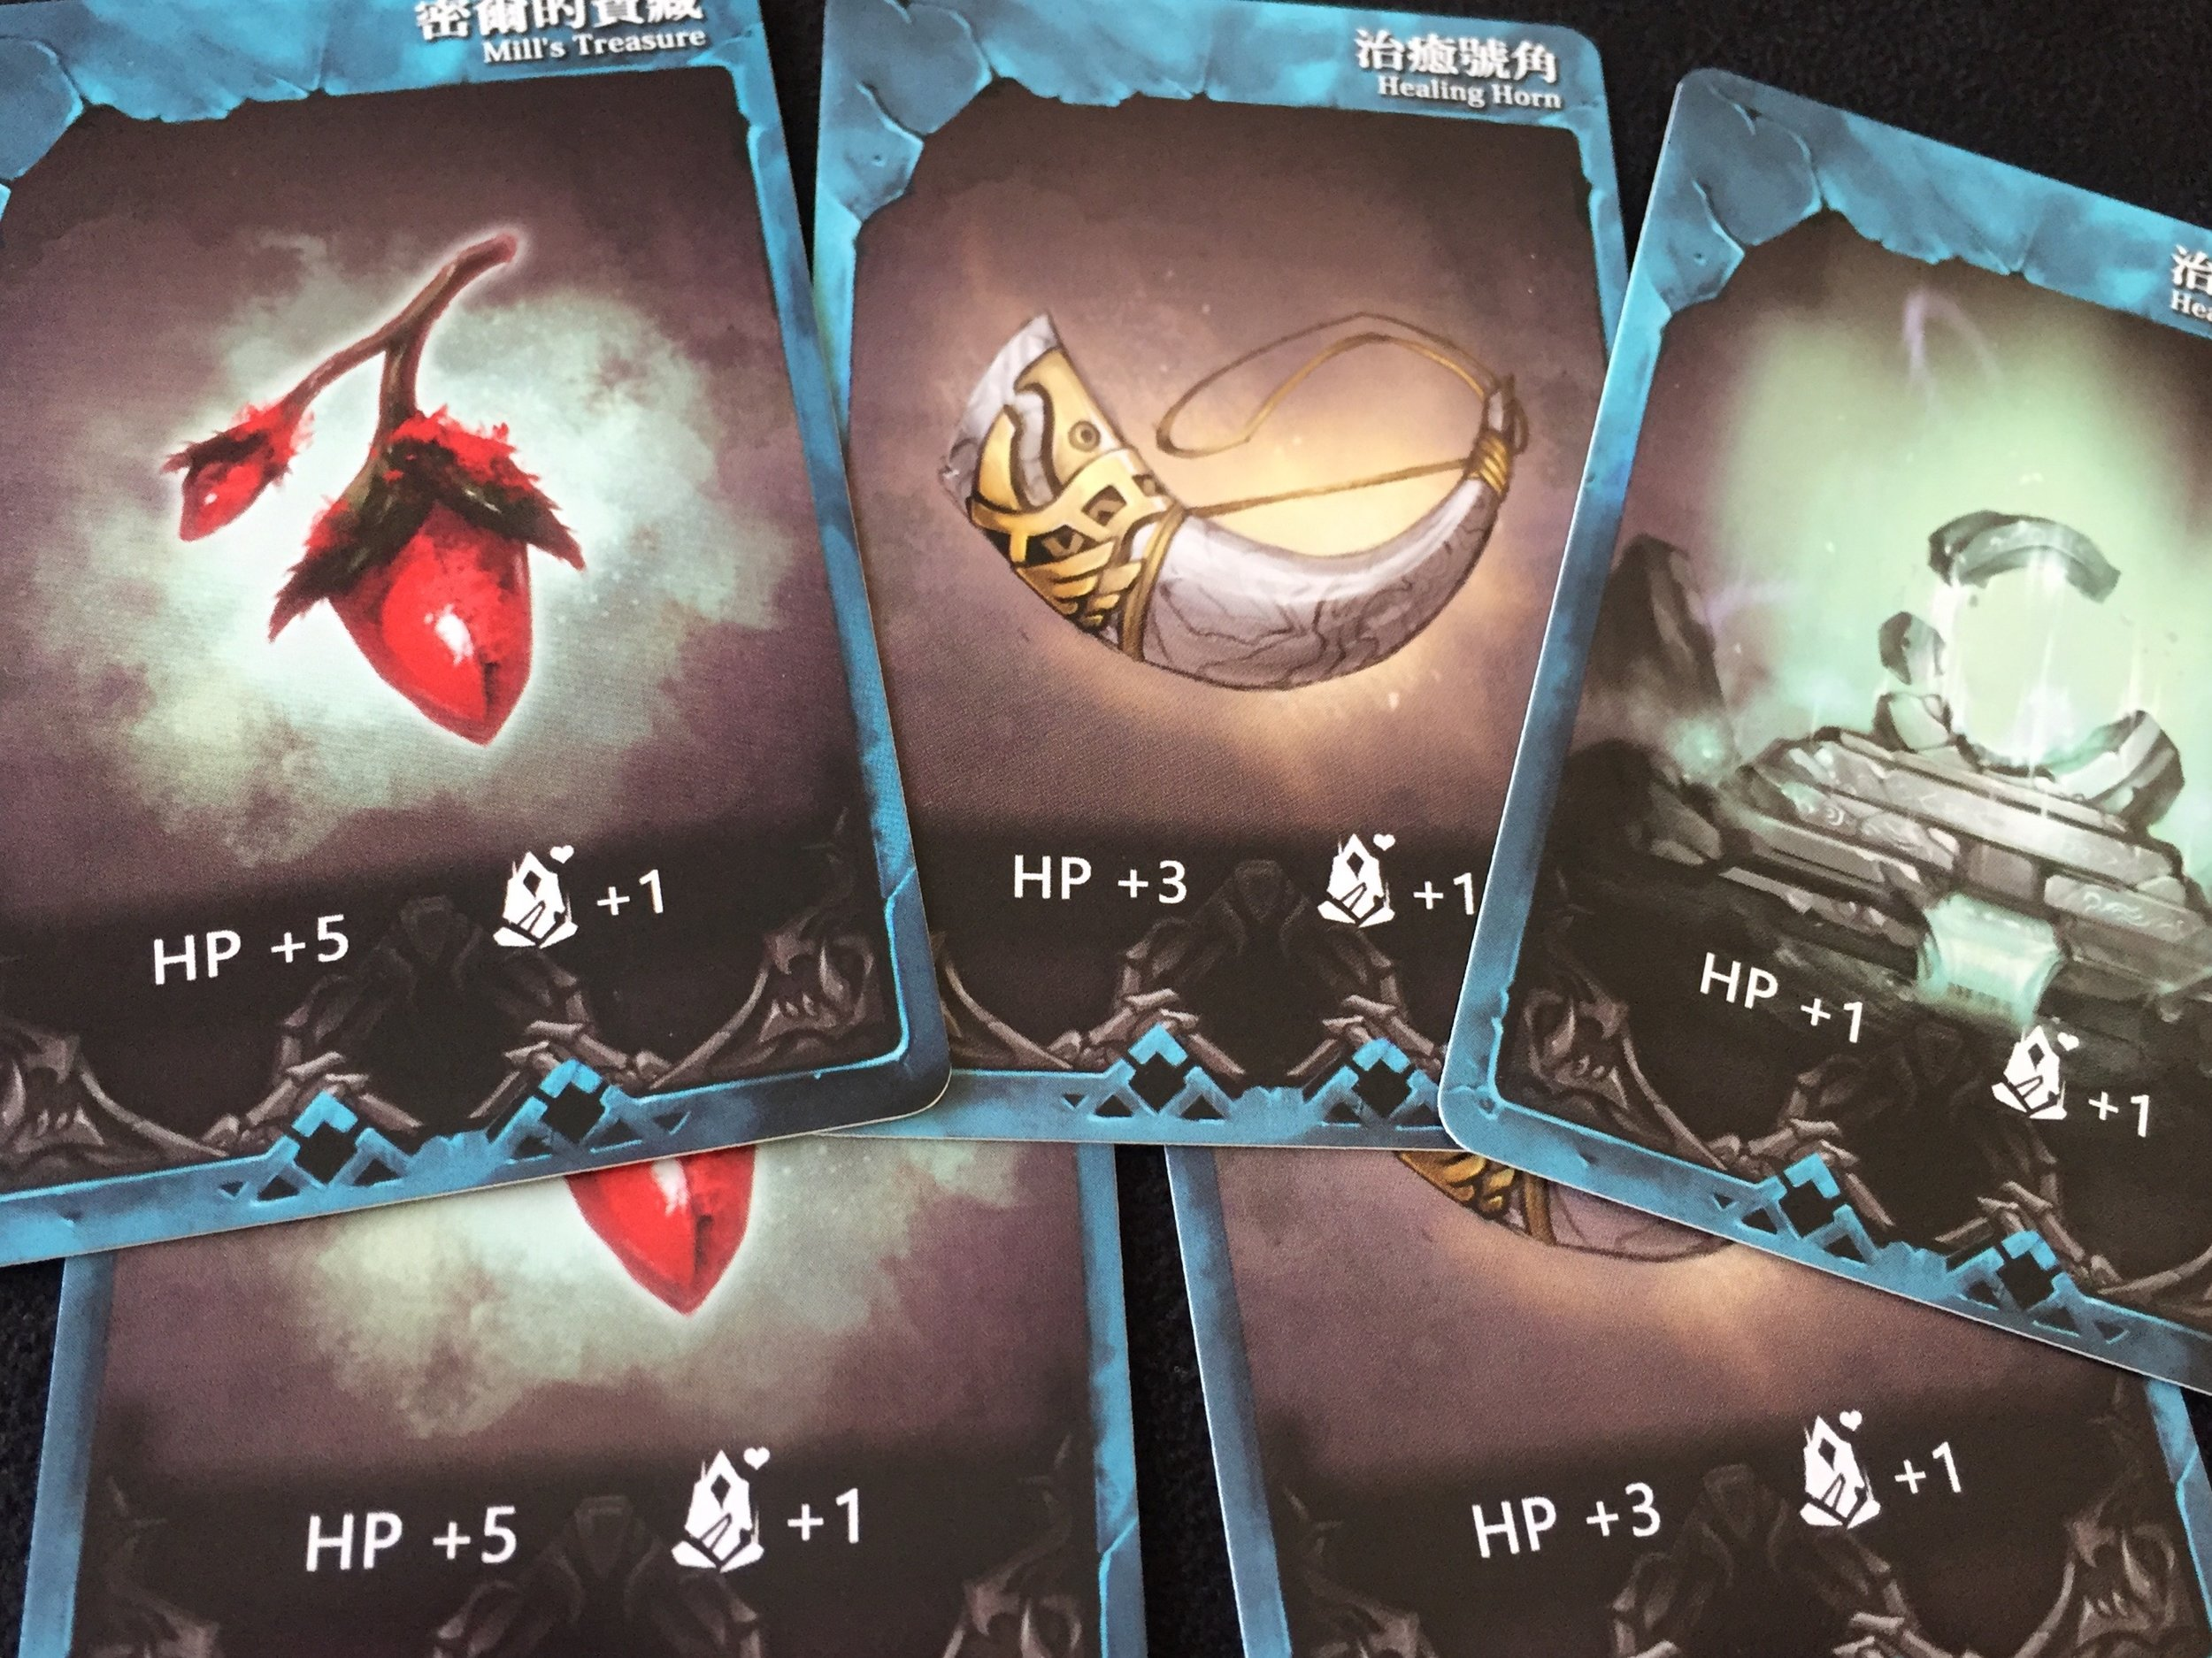 All 5 Healing cards